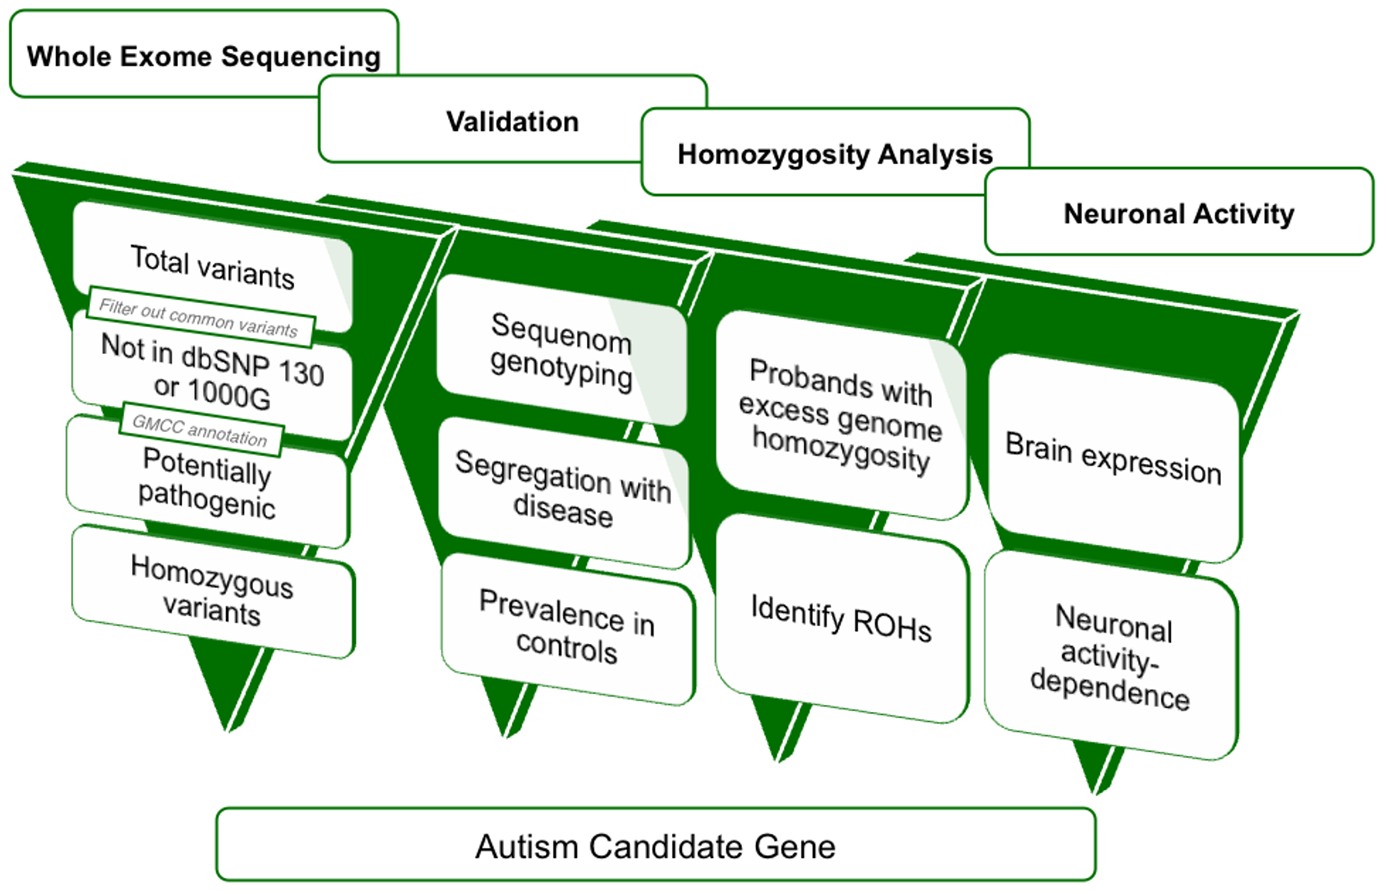 A four-dimensional approach to identifying autism candidate genes.